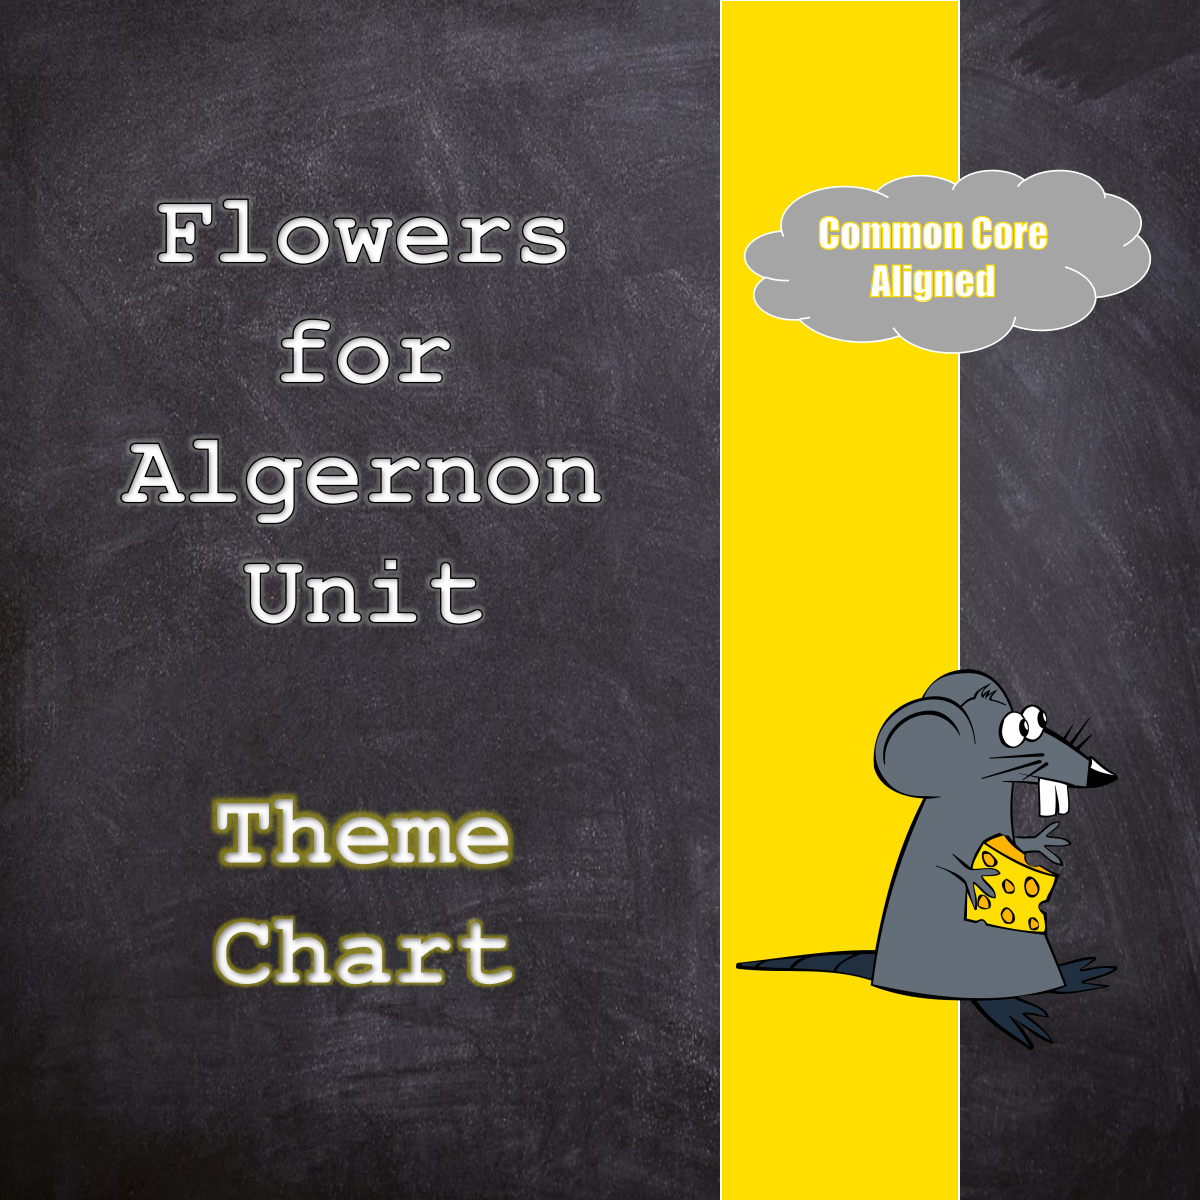 Flowers for Algernon: Graphic Organizer for Themes